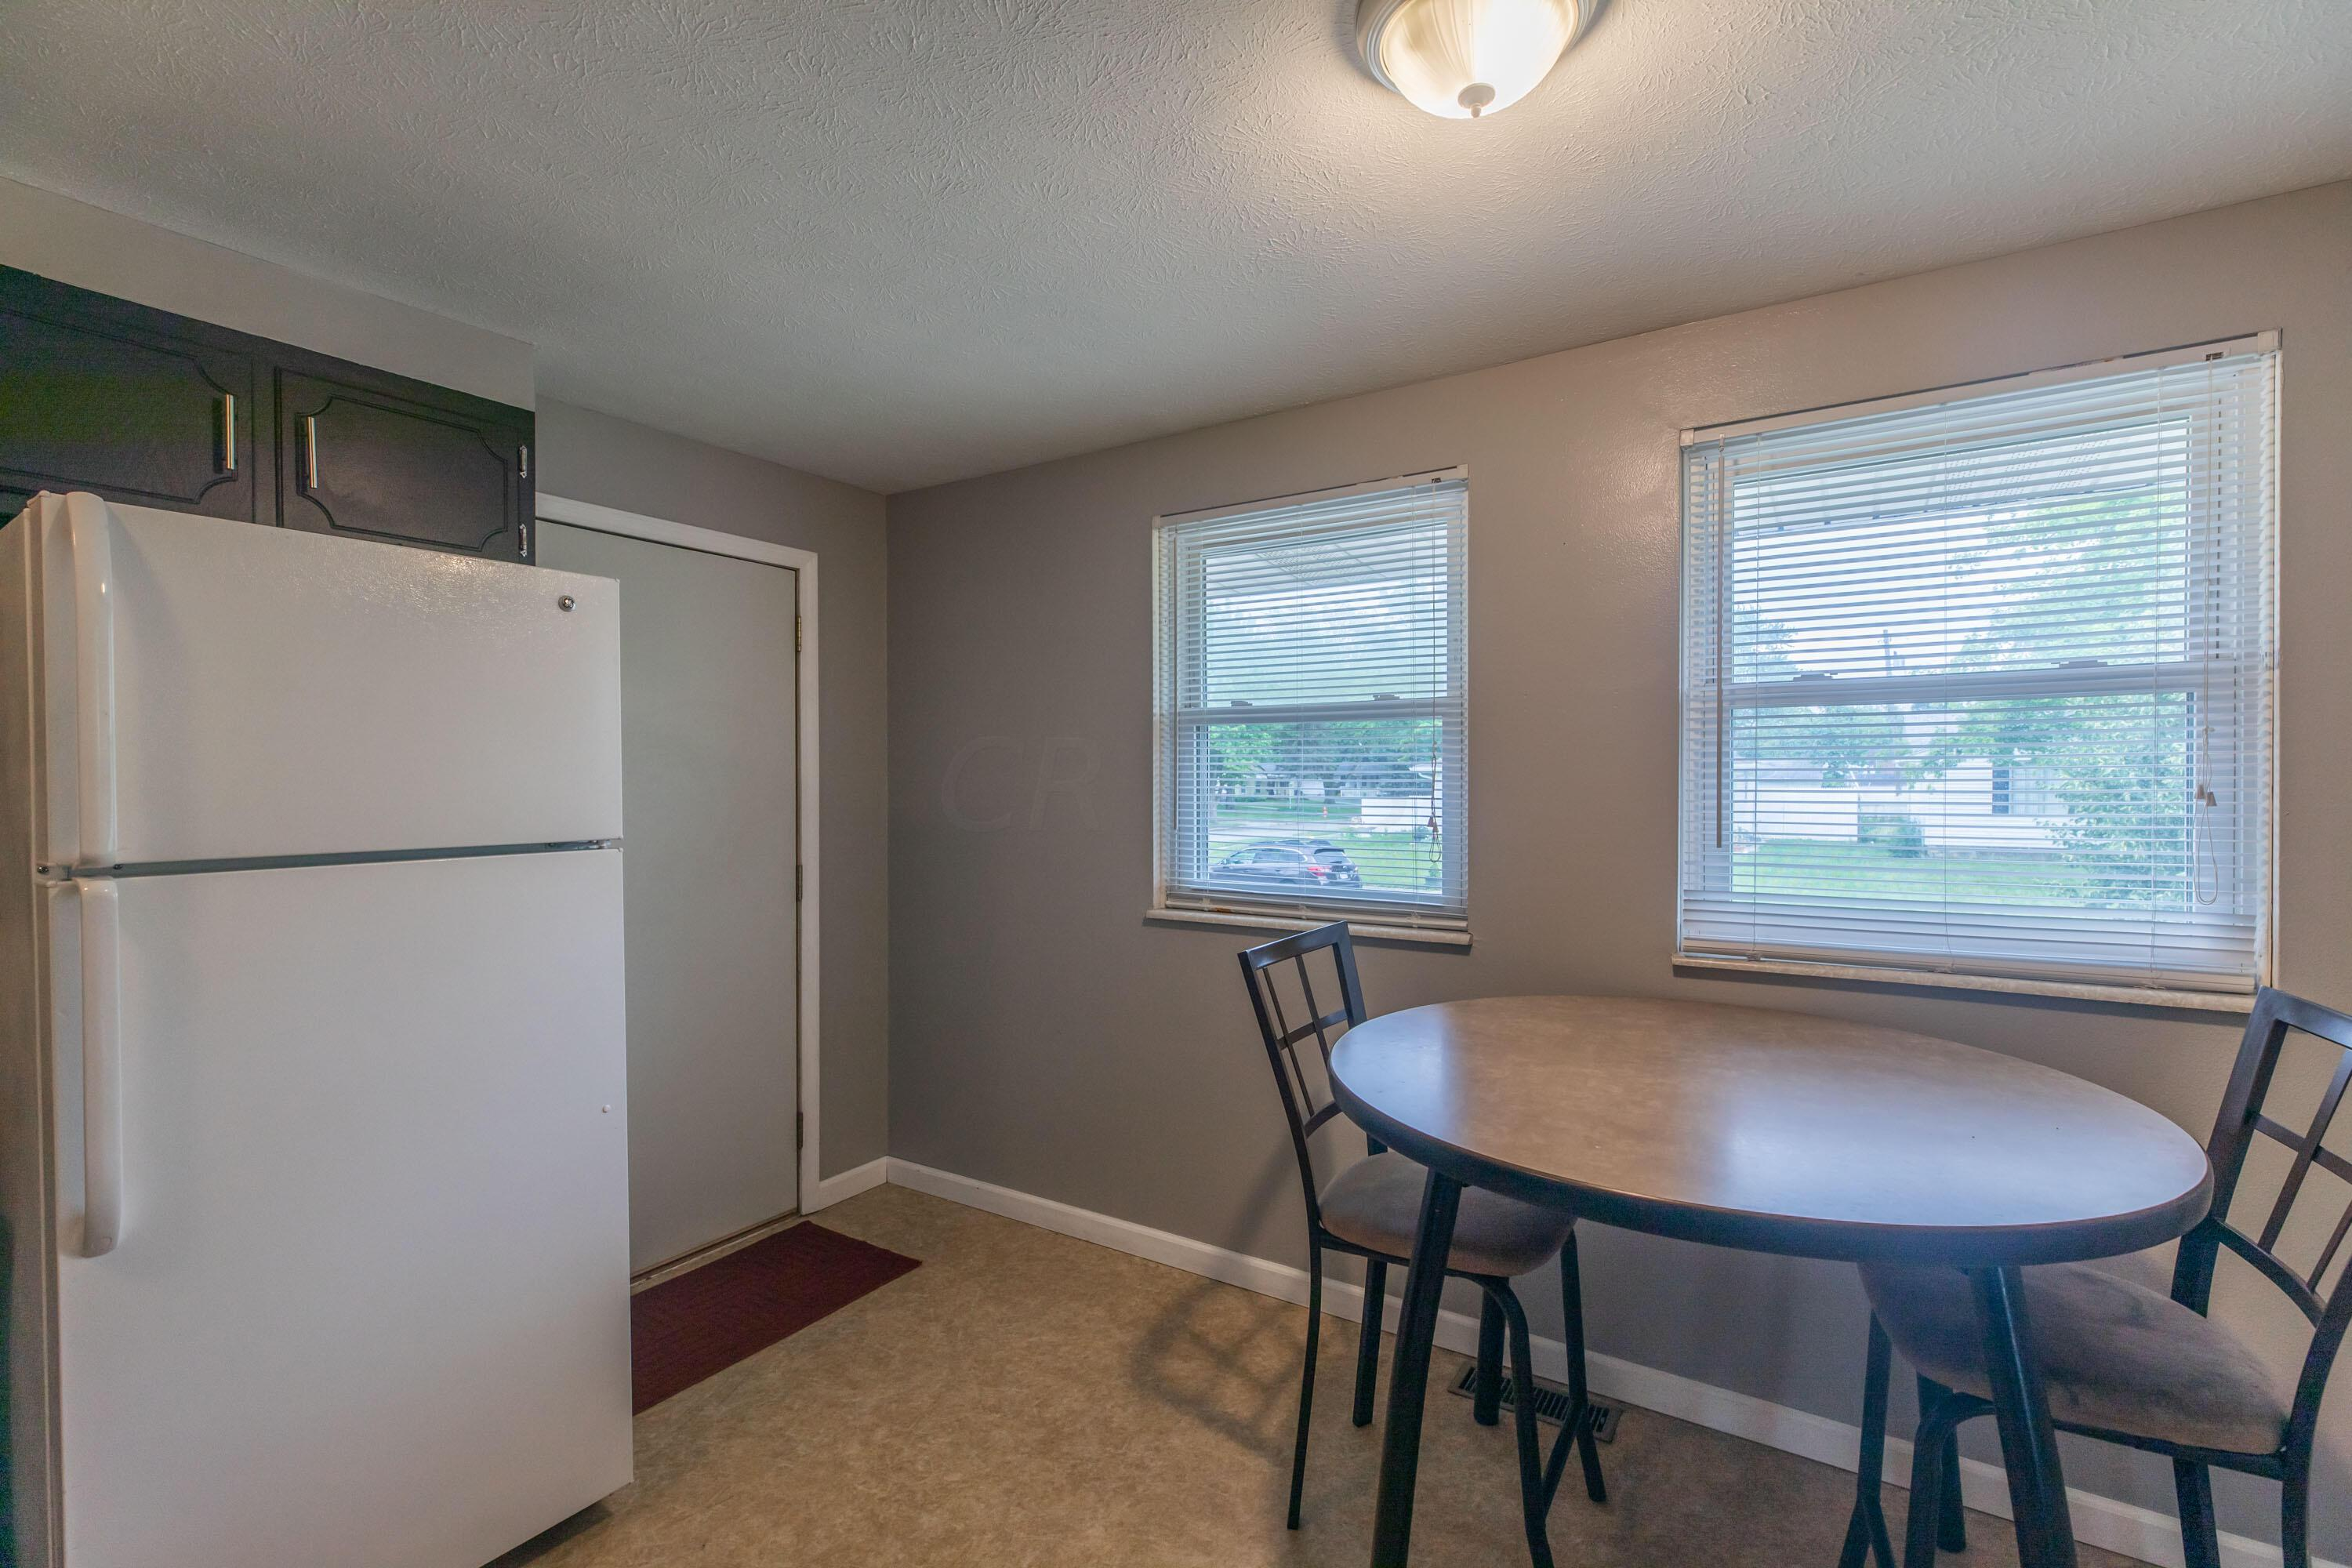 Kitchen/Eating Space